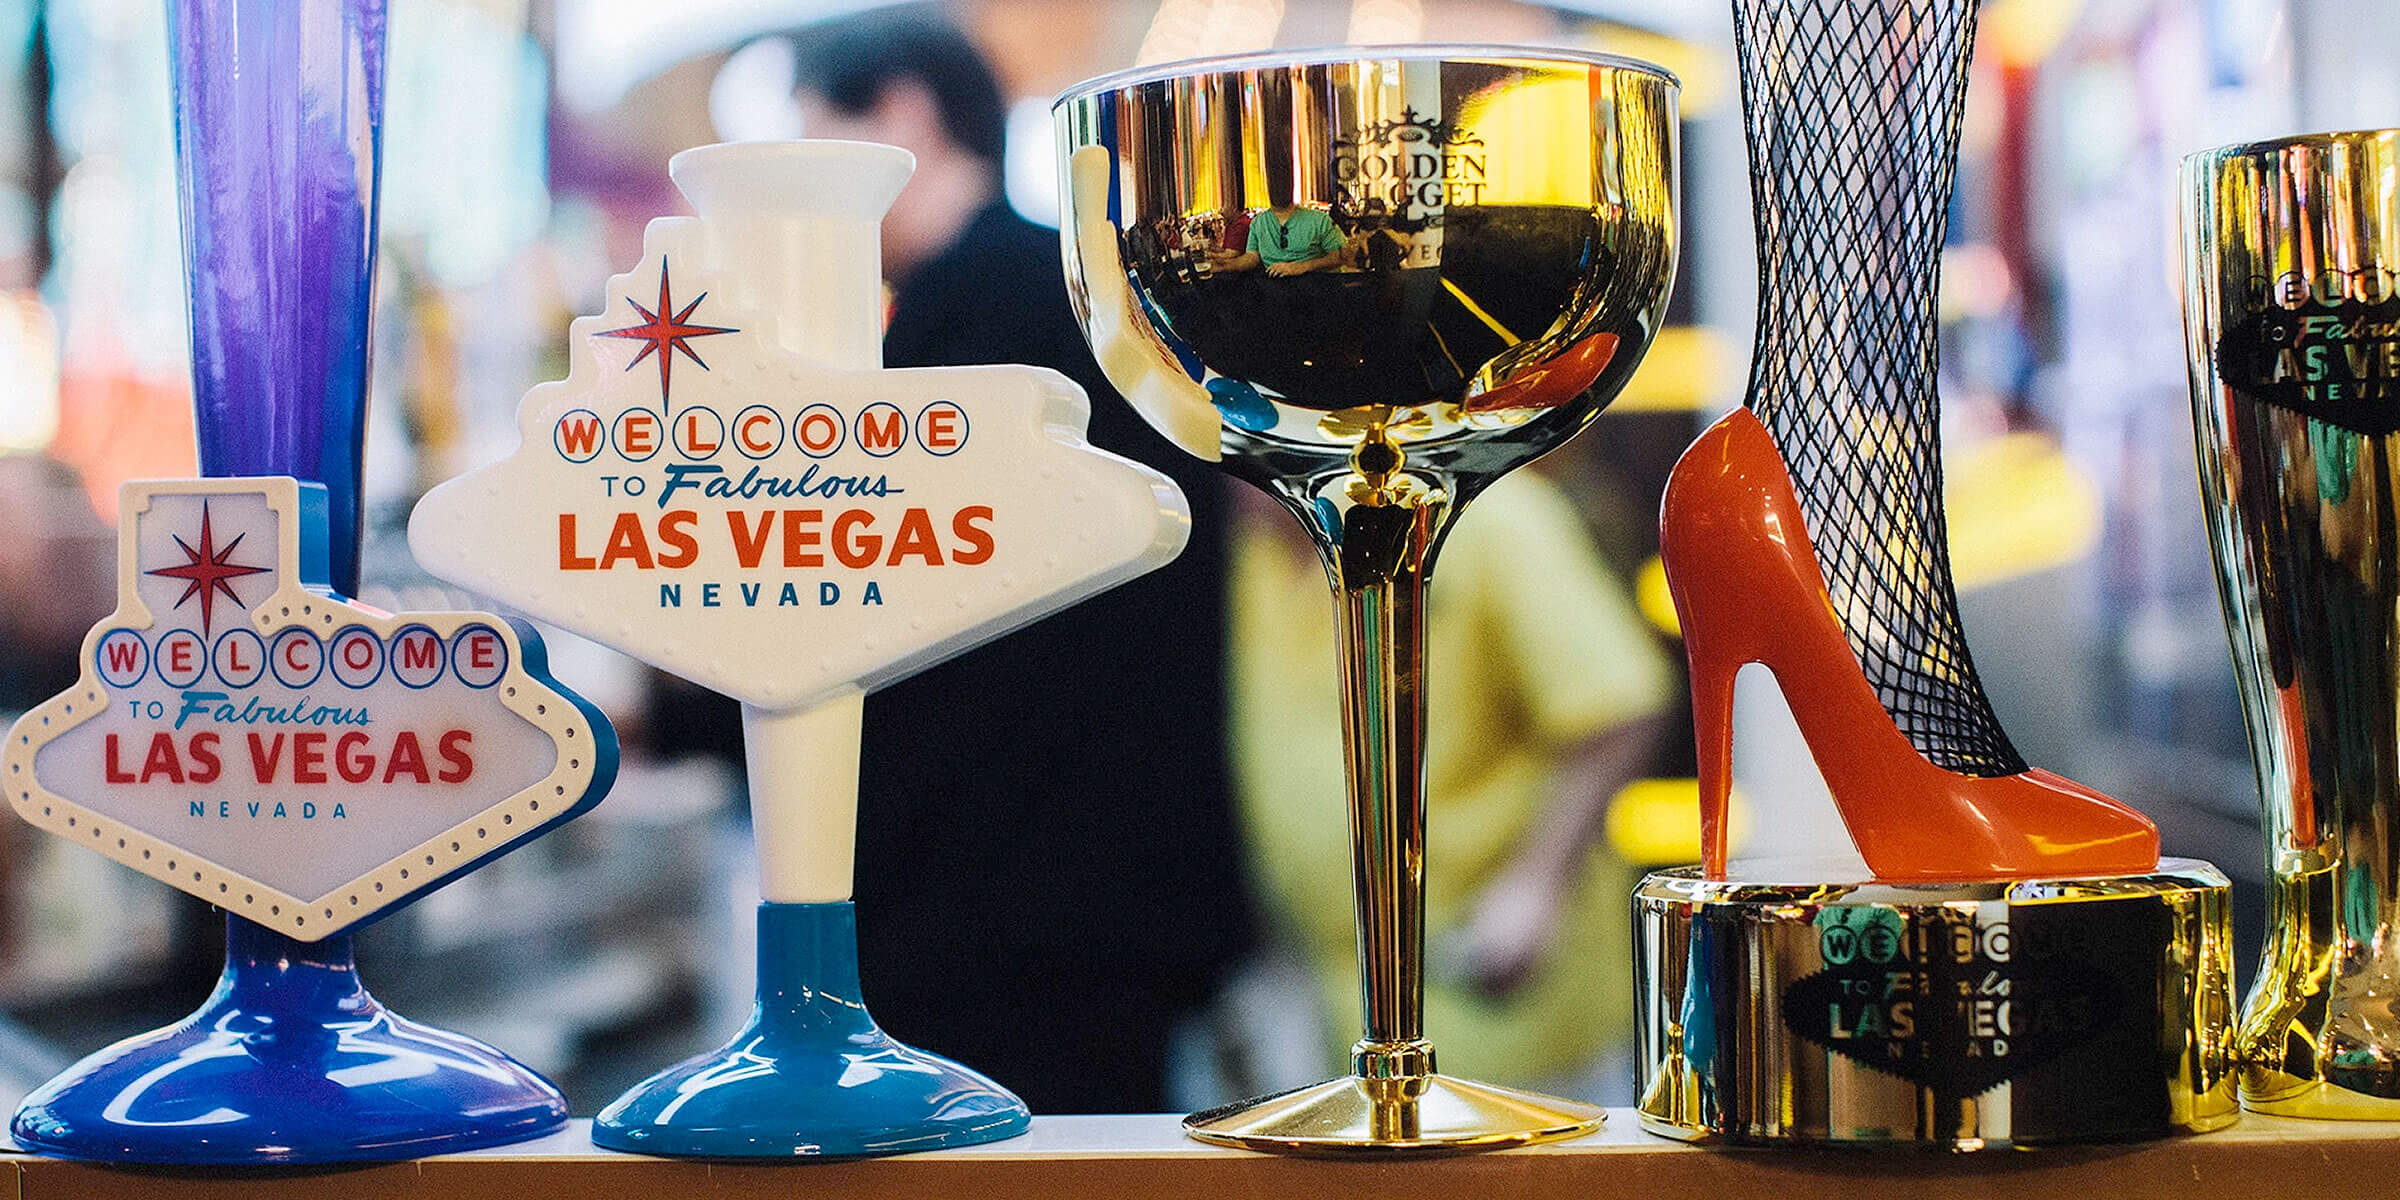 The City of Las Vegas says it is launching a plan that would allow restaurants providing curbside meals to also sell alcohol with those meals.